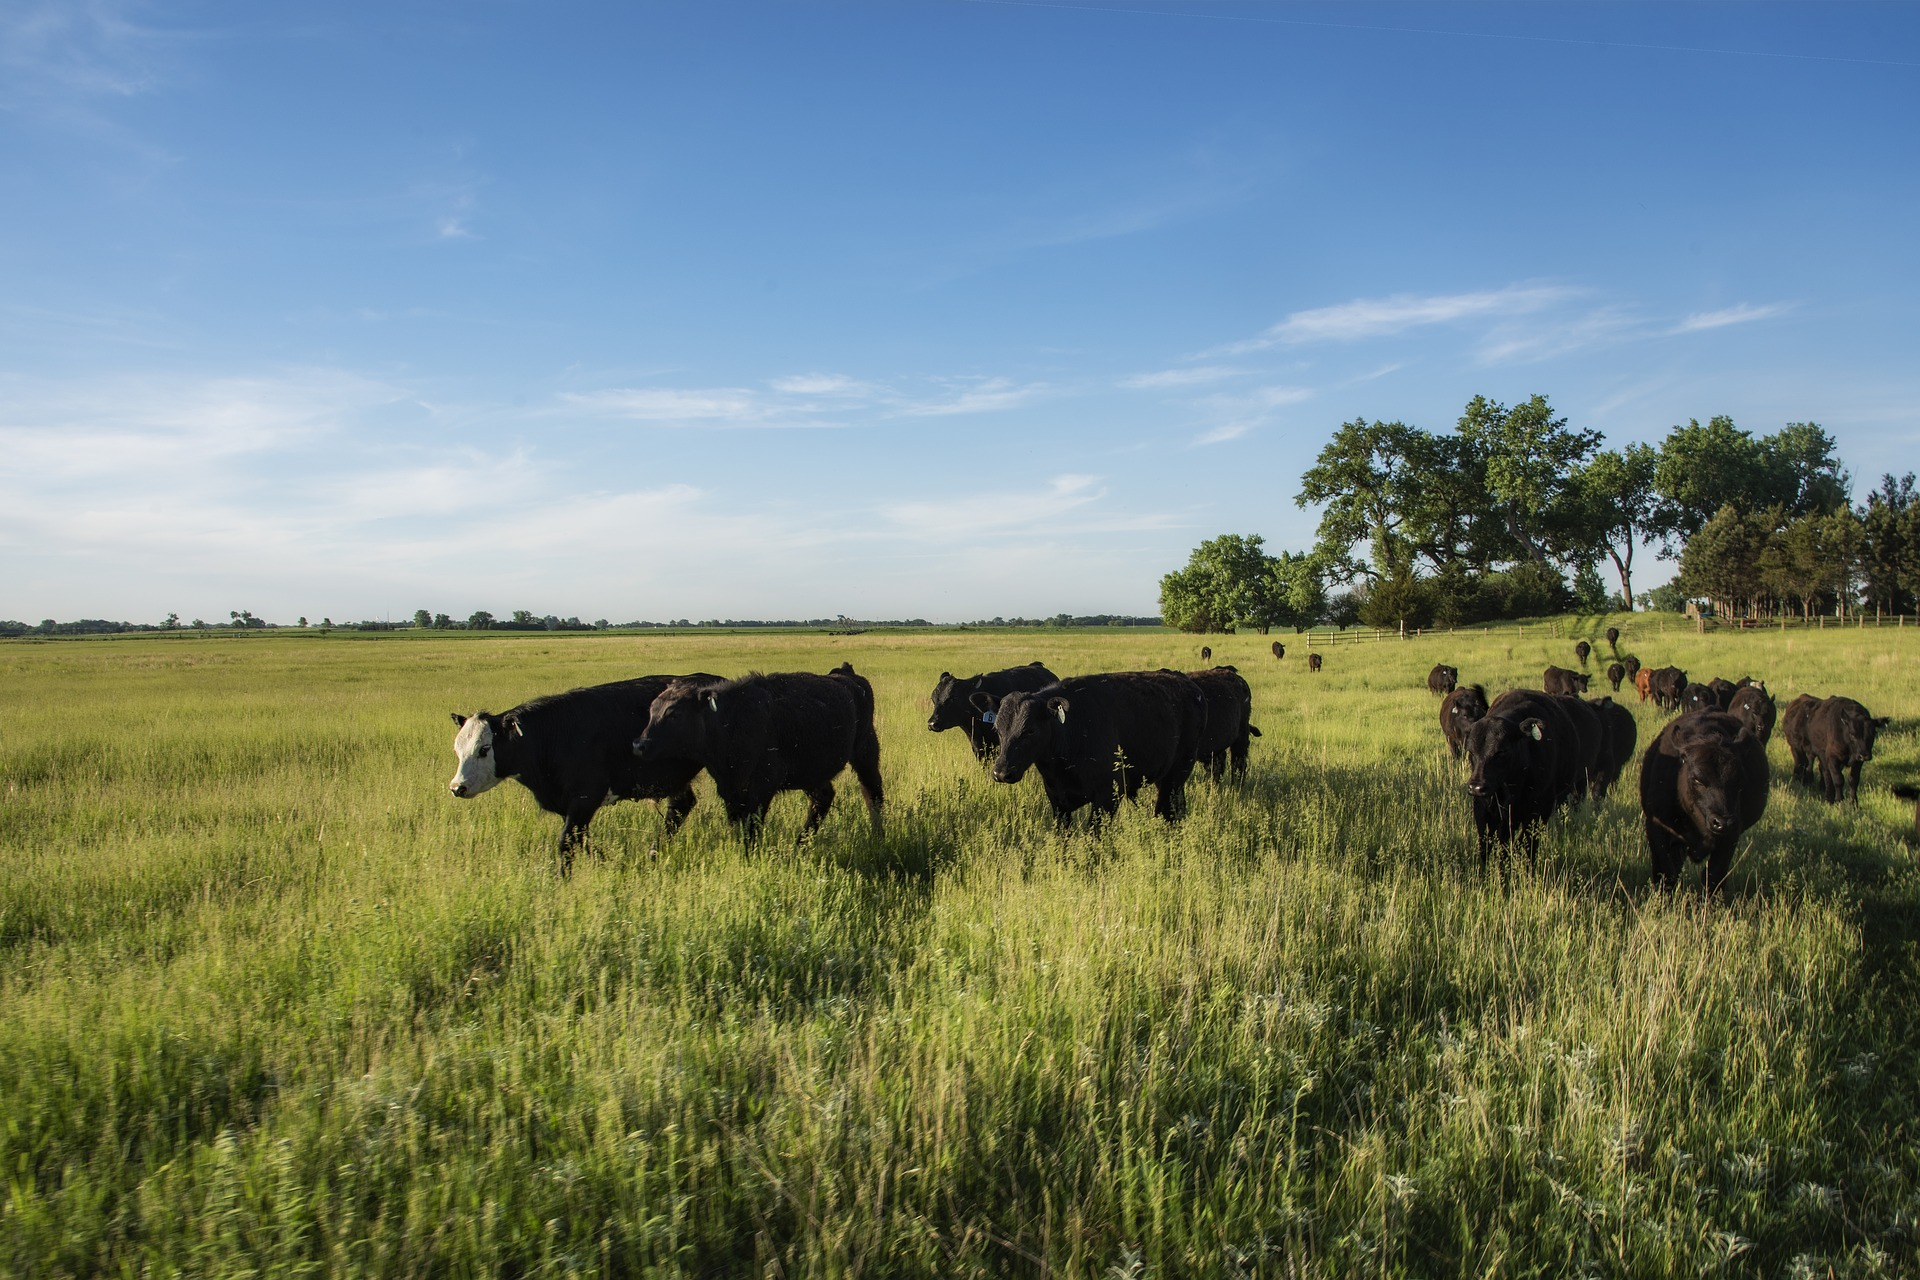 Cows in grass